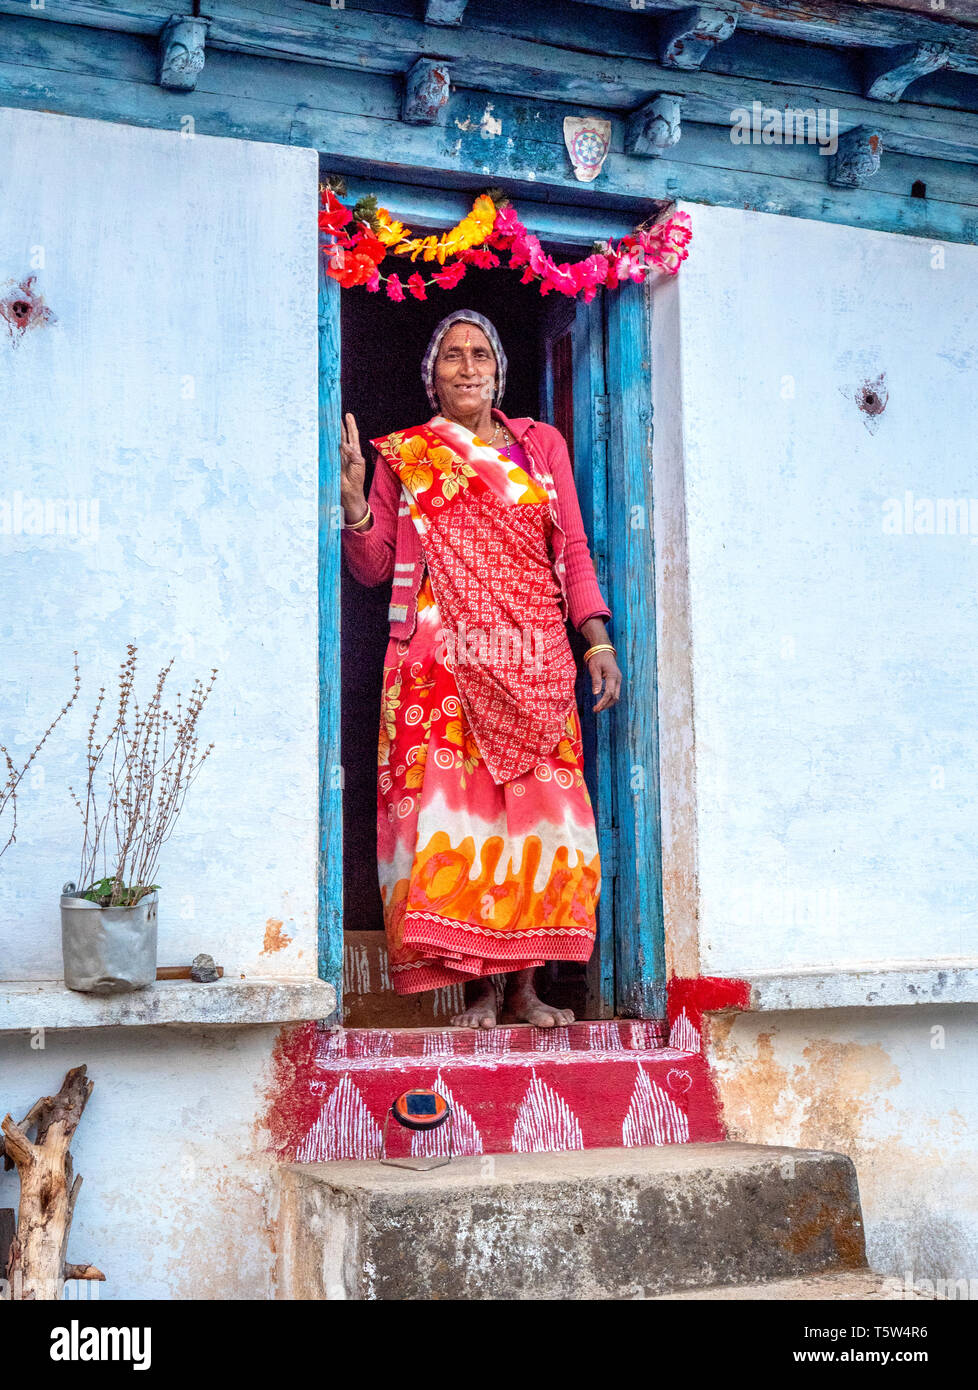 Woman on the decorated and garlanded threshold of her house in the remote village of Satri in the Binsar region of Uttarakhand Himalayas - Stock Image